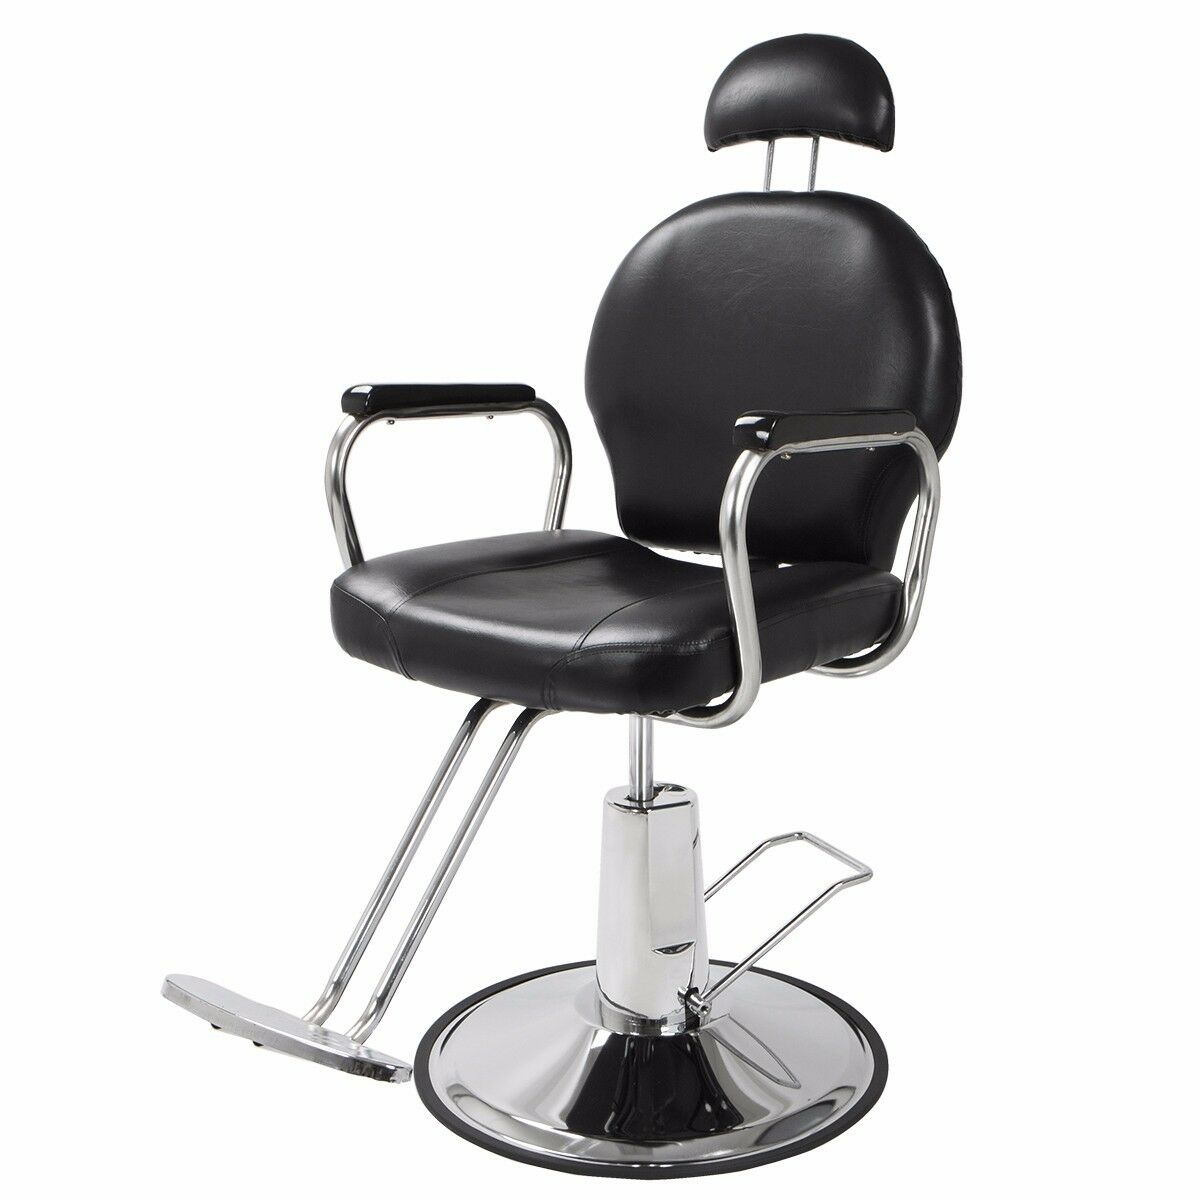 New Reclining Hydraulic Barber Chair Salon Styling Beauty